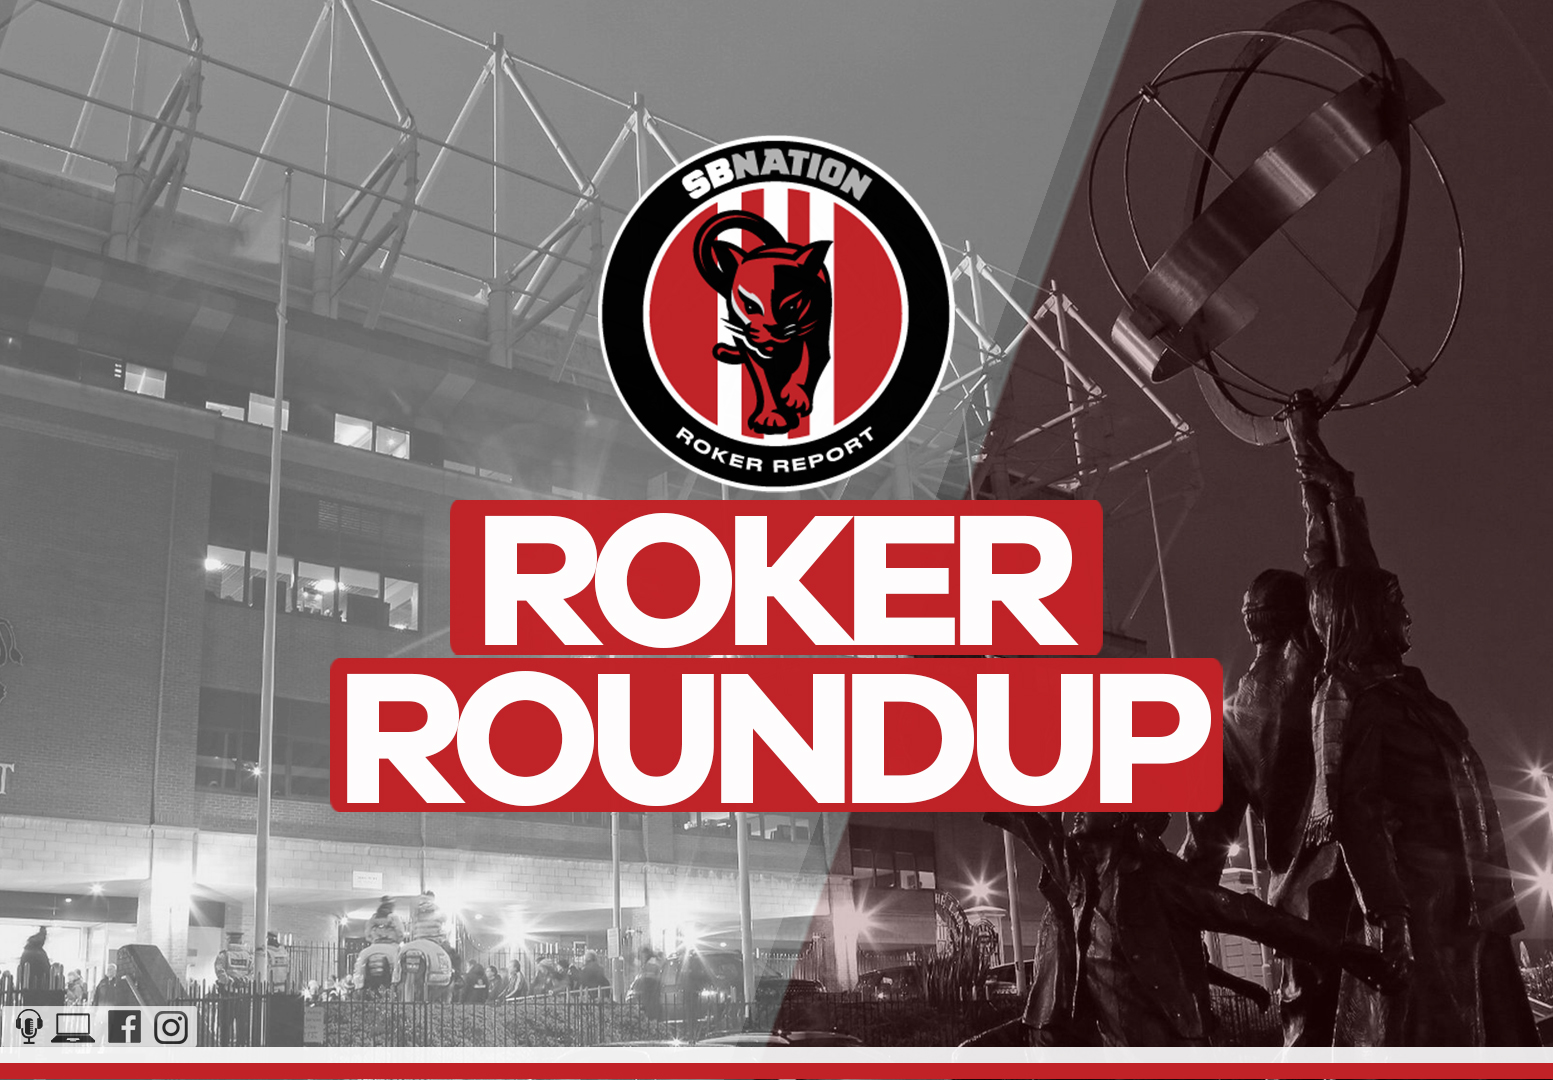 Roker Roundup: Fleetwood manager Joey Barton discusses Sunderland's failed bid for Ched Evans